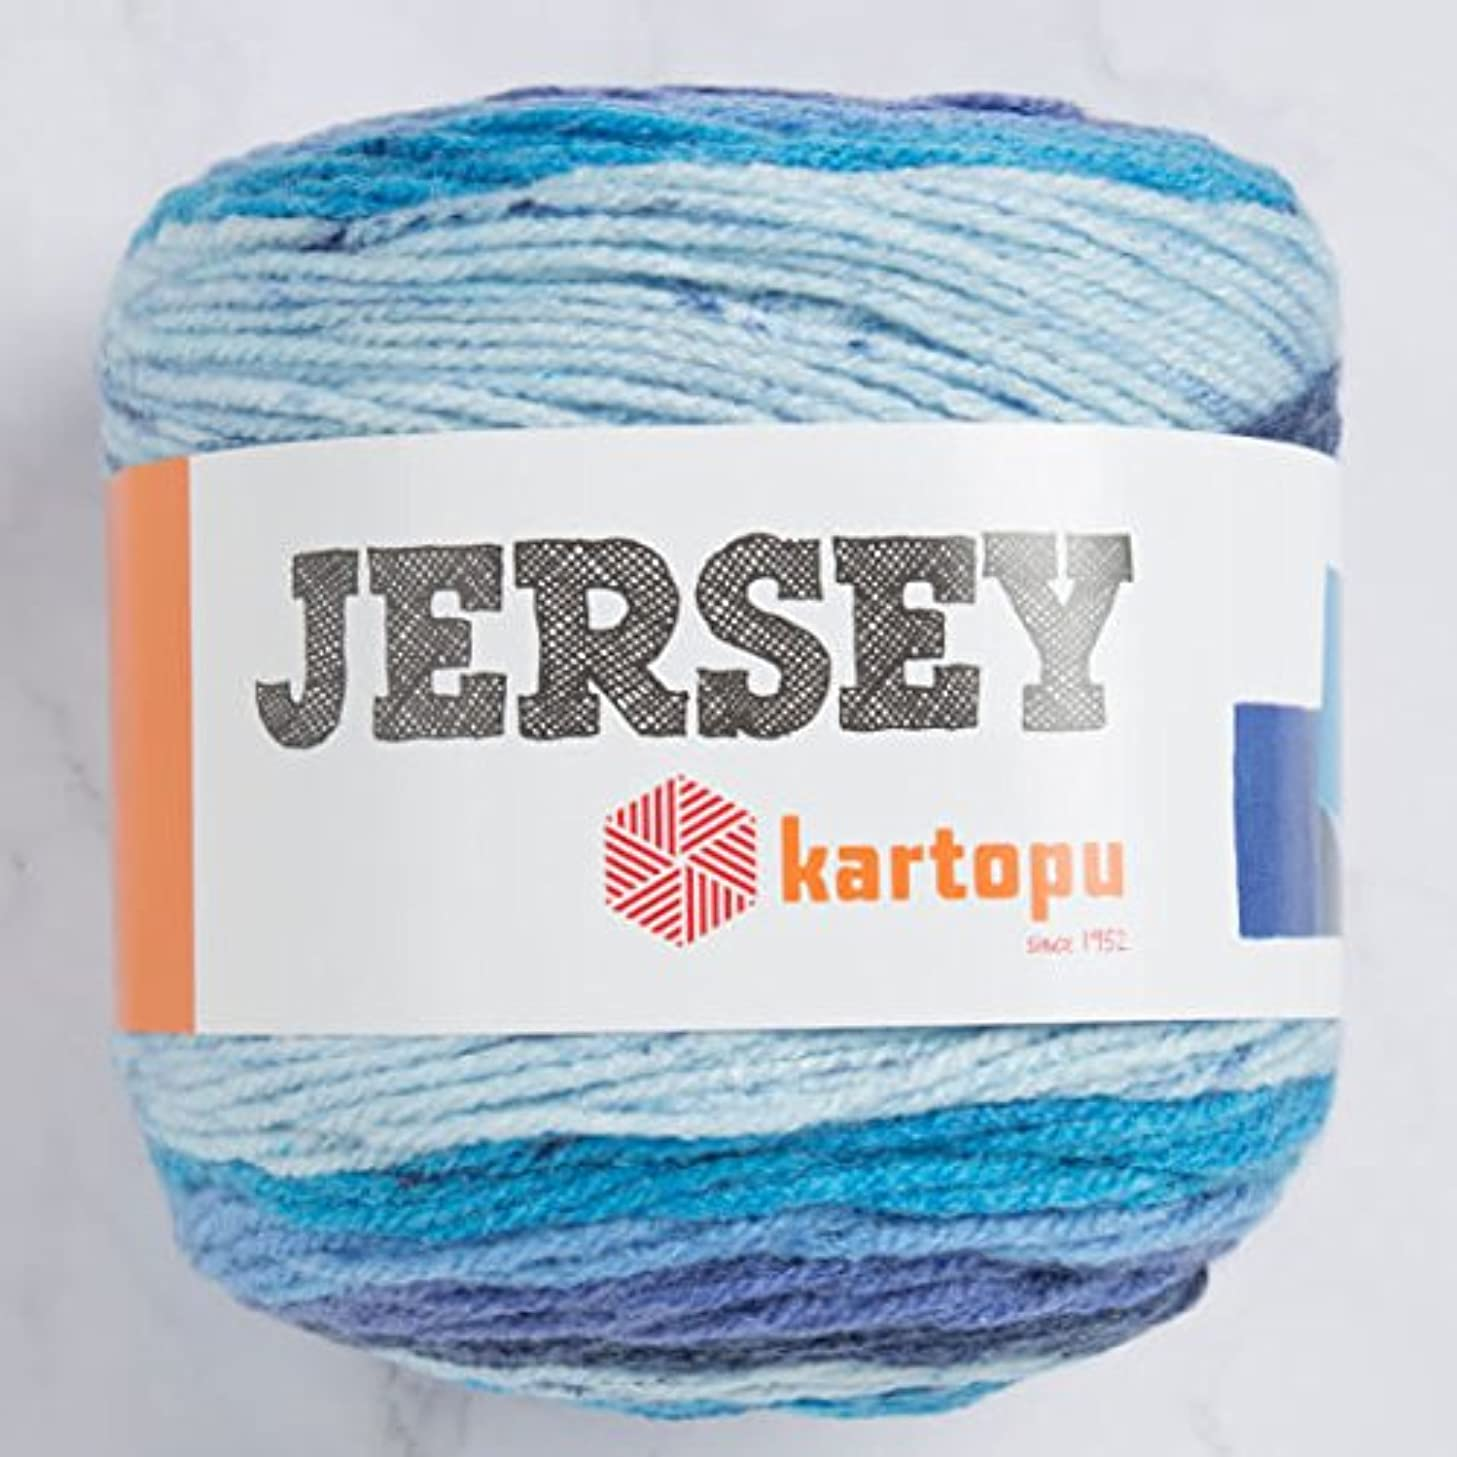 Kartopu Jersey Multi-Colored Cake Yarn 7.1 Oz (200g) / 394 Yrds (360m) Soft, Medium-Worsted Wool Yarn, 20% Turkish Wool - H1400